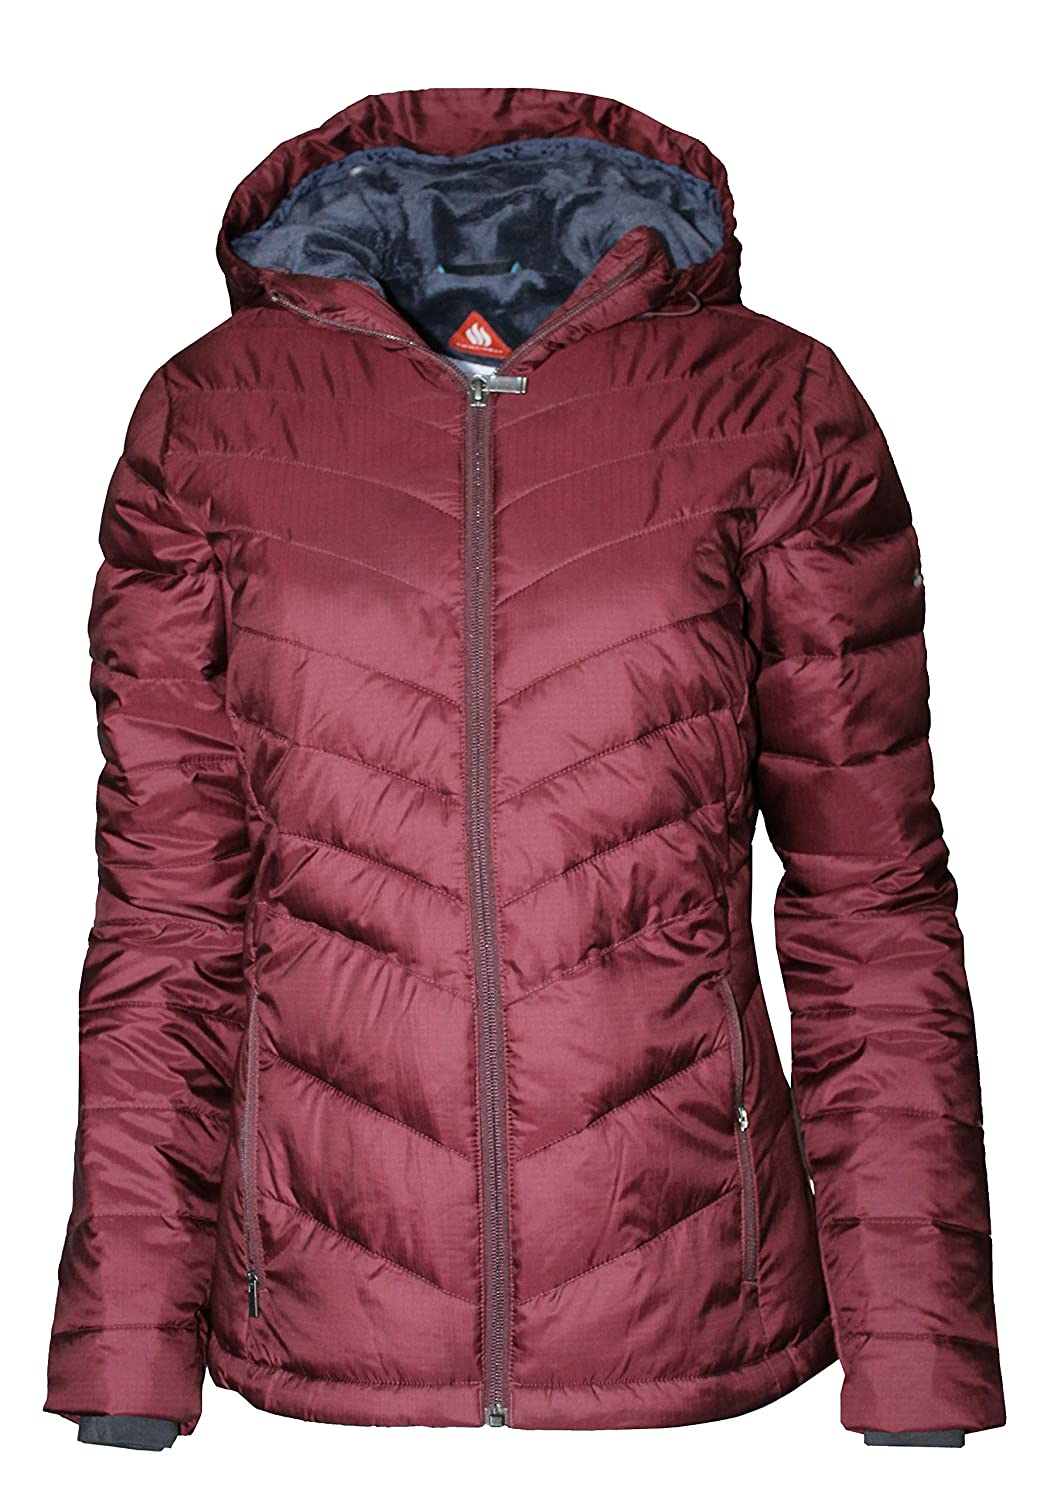 Bloodstone Columbia Women's Discovery Peak III Omni Heat Hooded Puffer Jacket